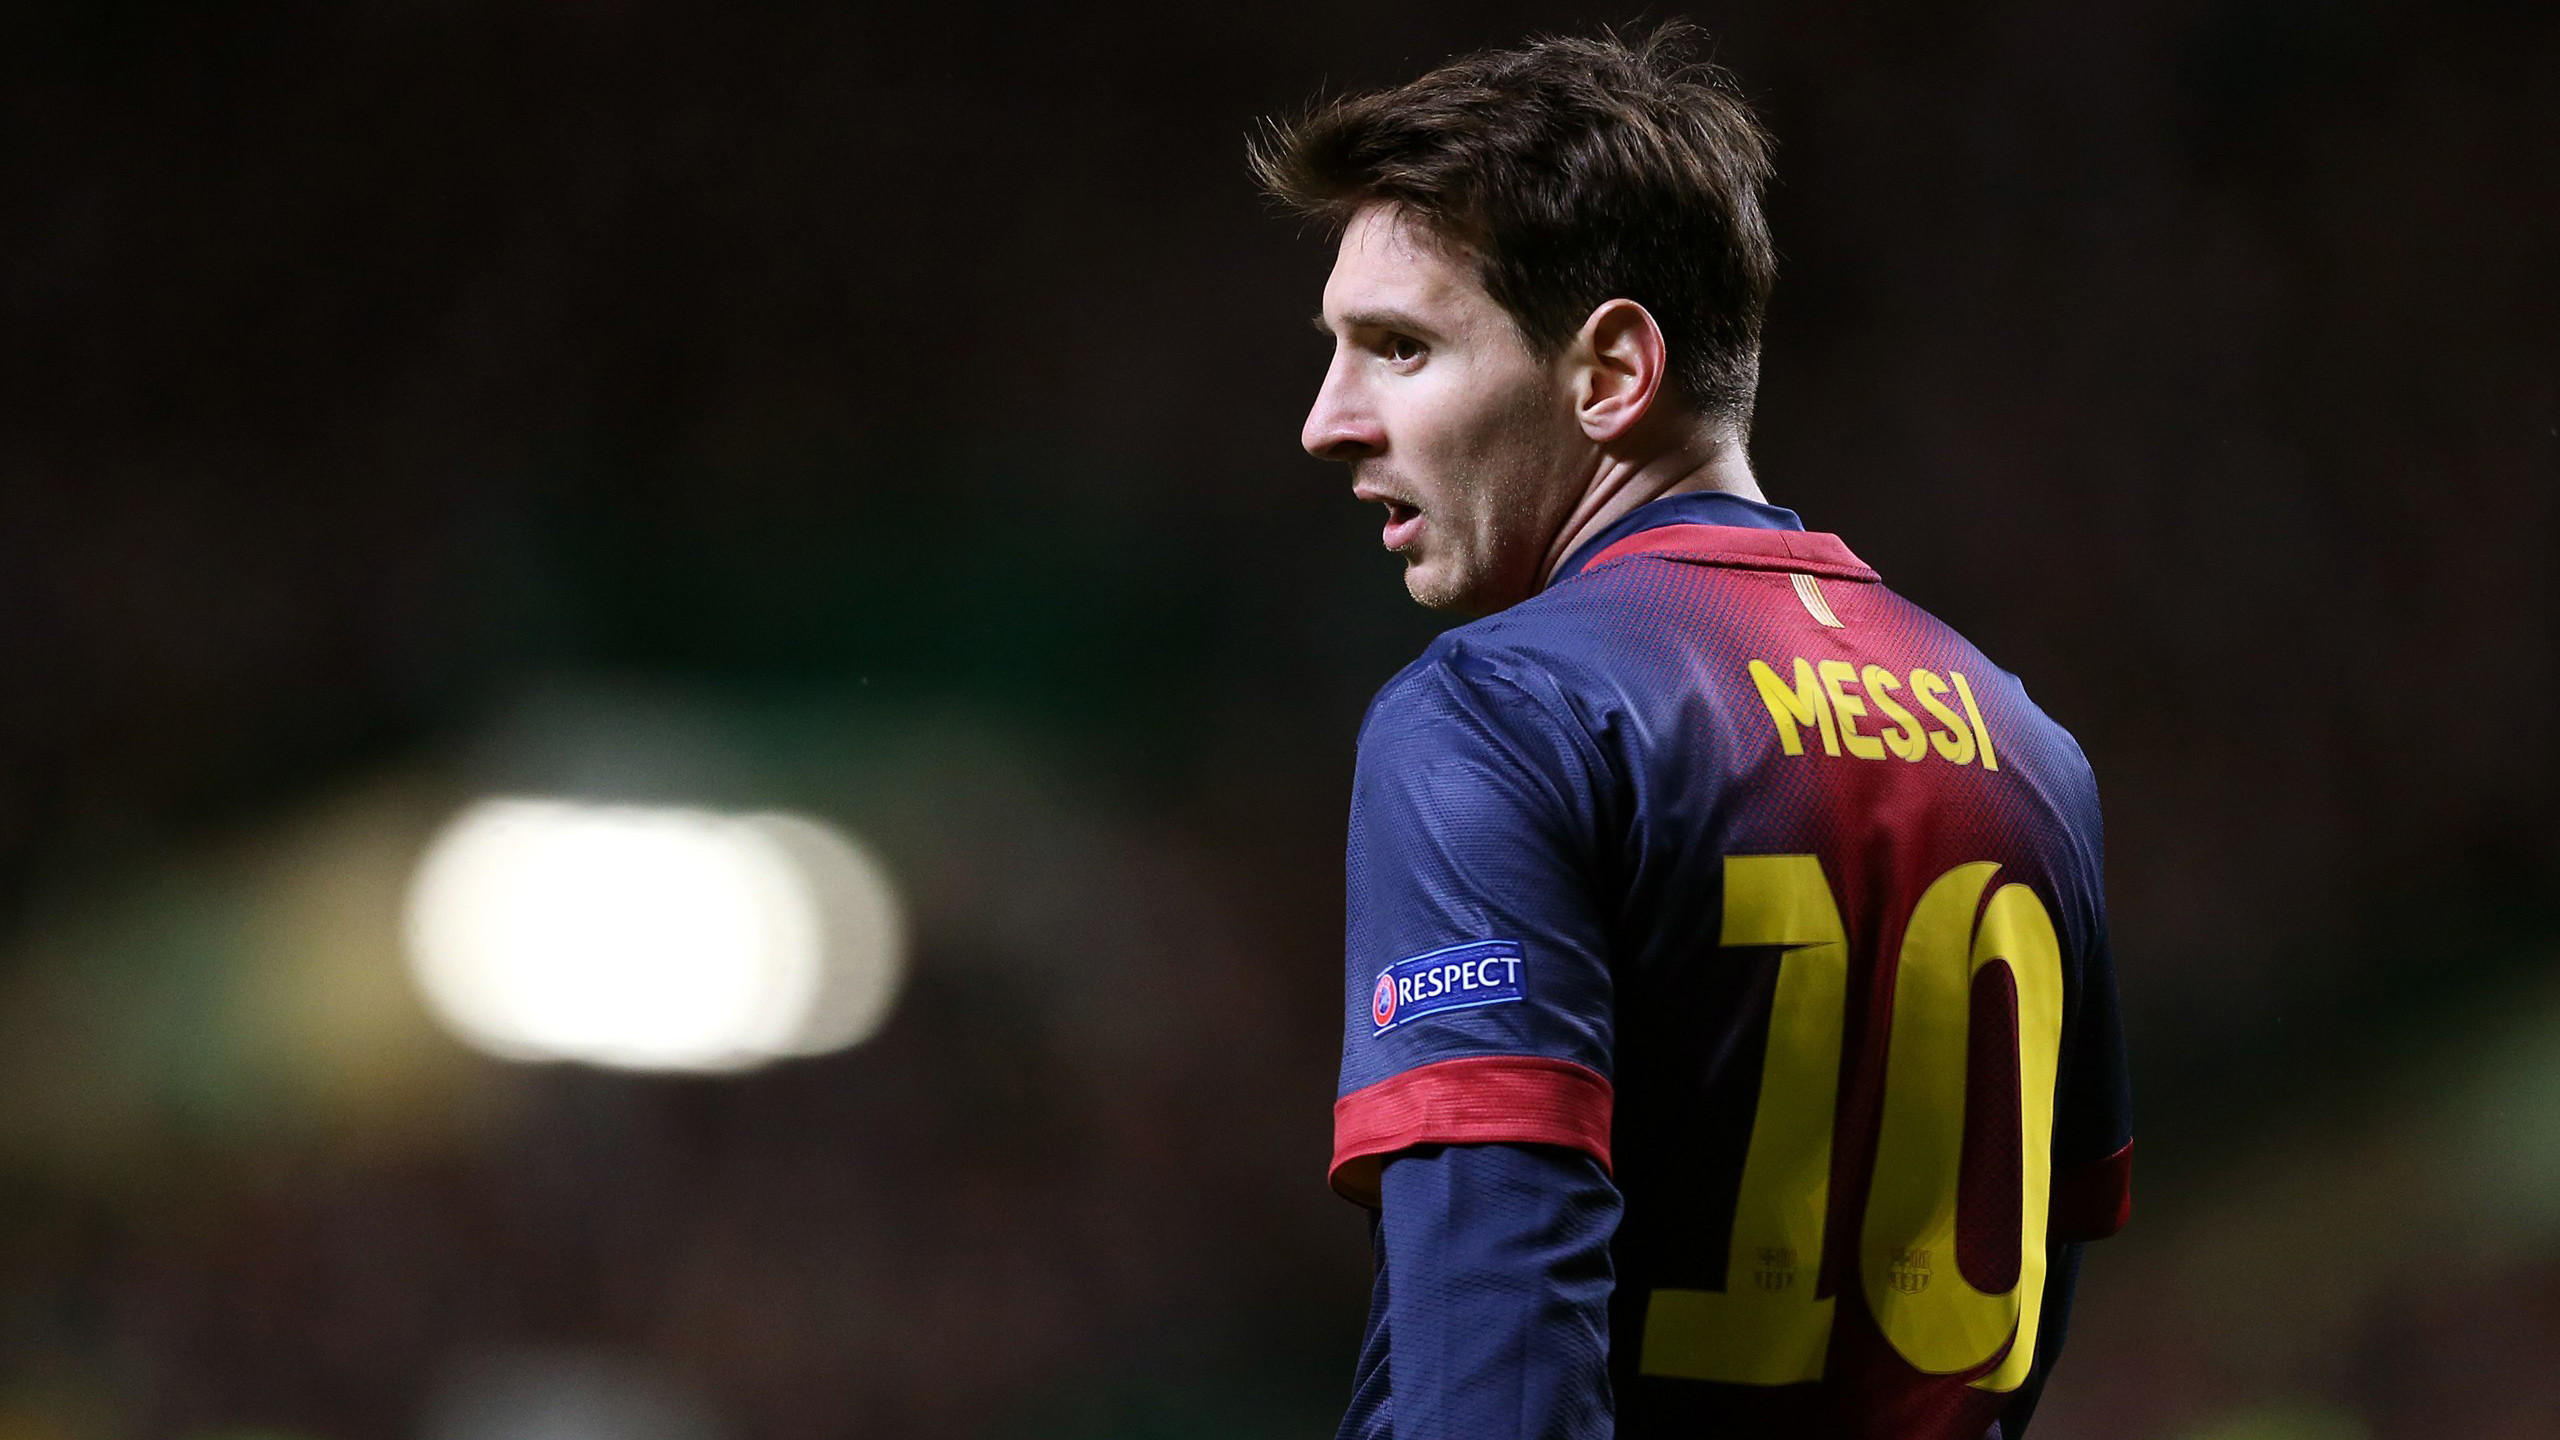 Lionel Messi Full Size Hd: Lionel Messi Wallpaper HD 2018 (77+ Images